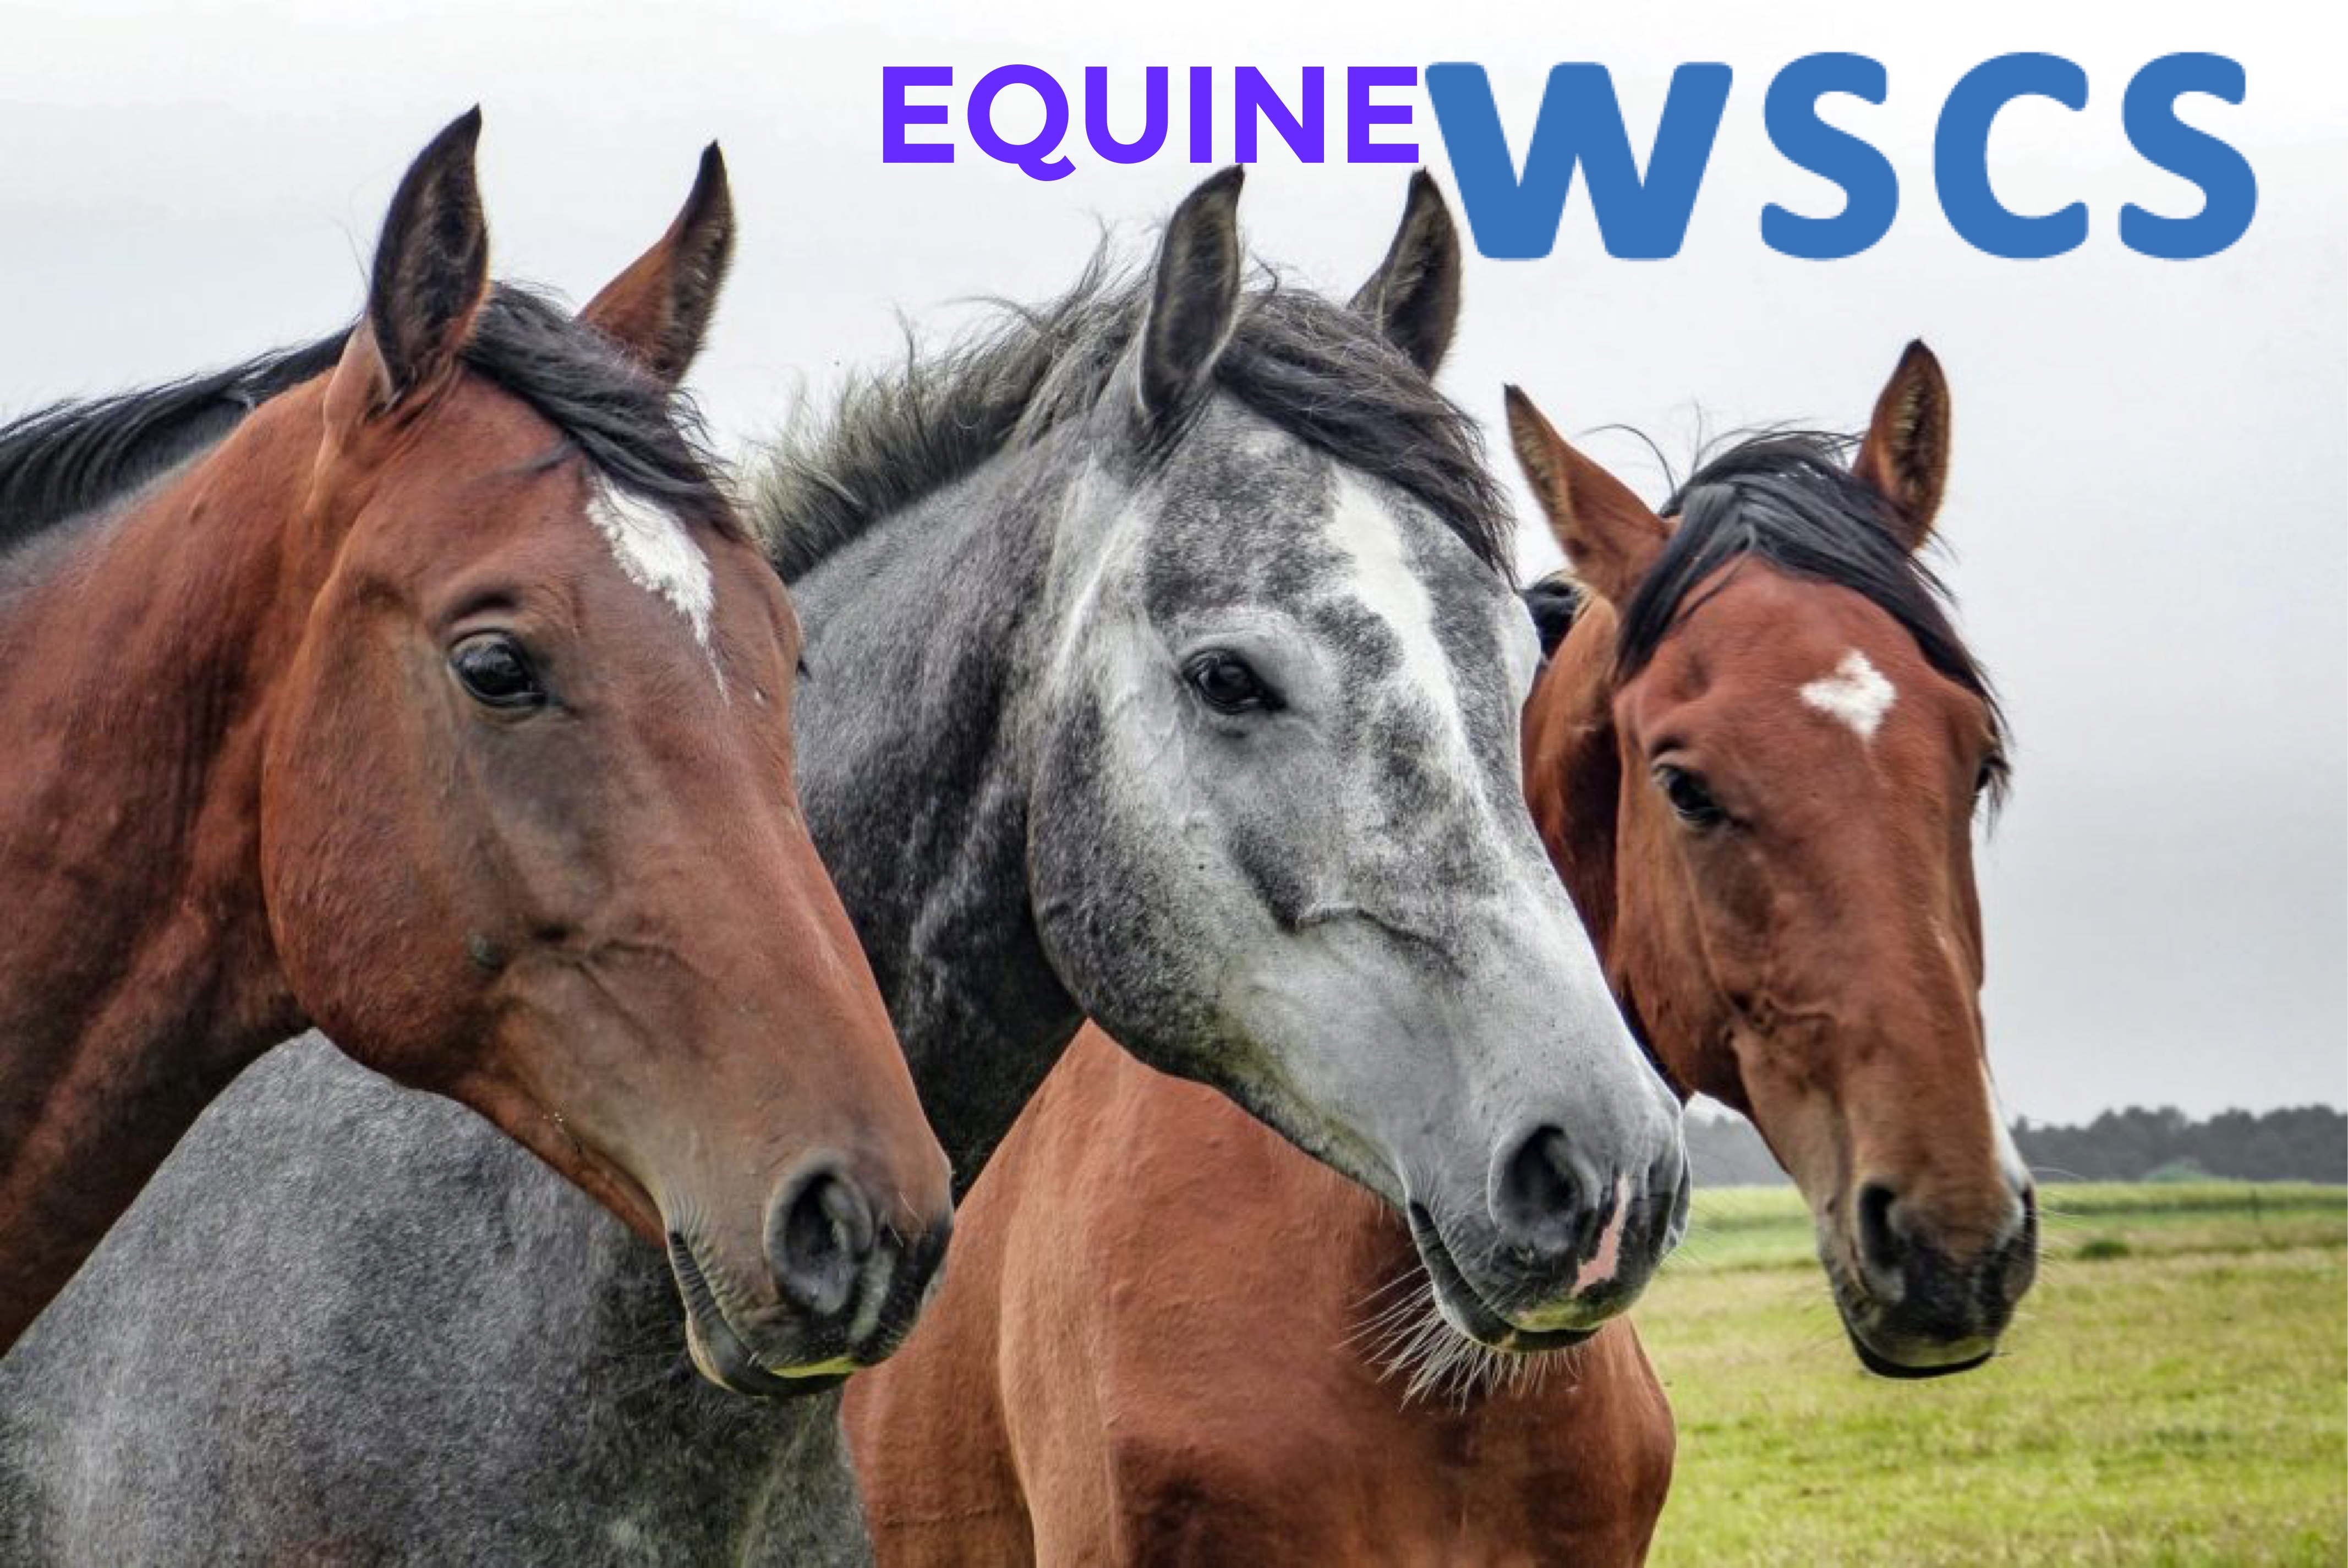 Equine World Stem Cell Summit partners with NAVRMA